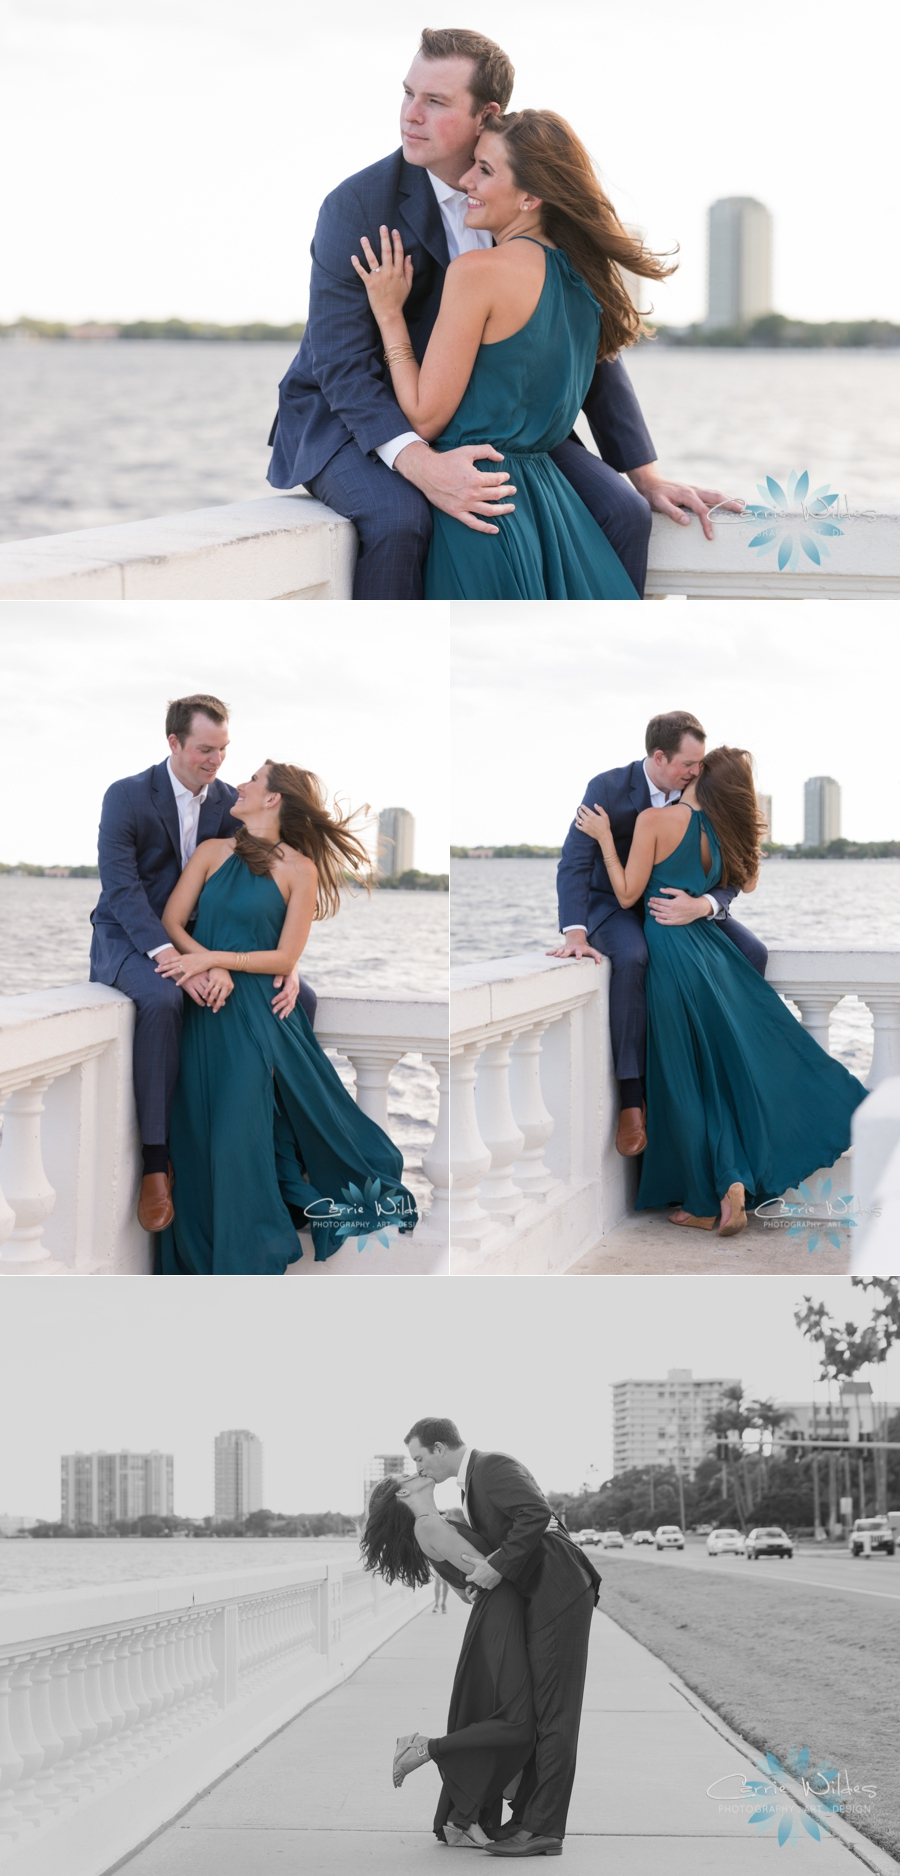 4_13_17 Laurie and Andrew South Tampa Engagement Session_0010.jpg